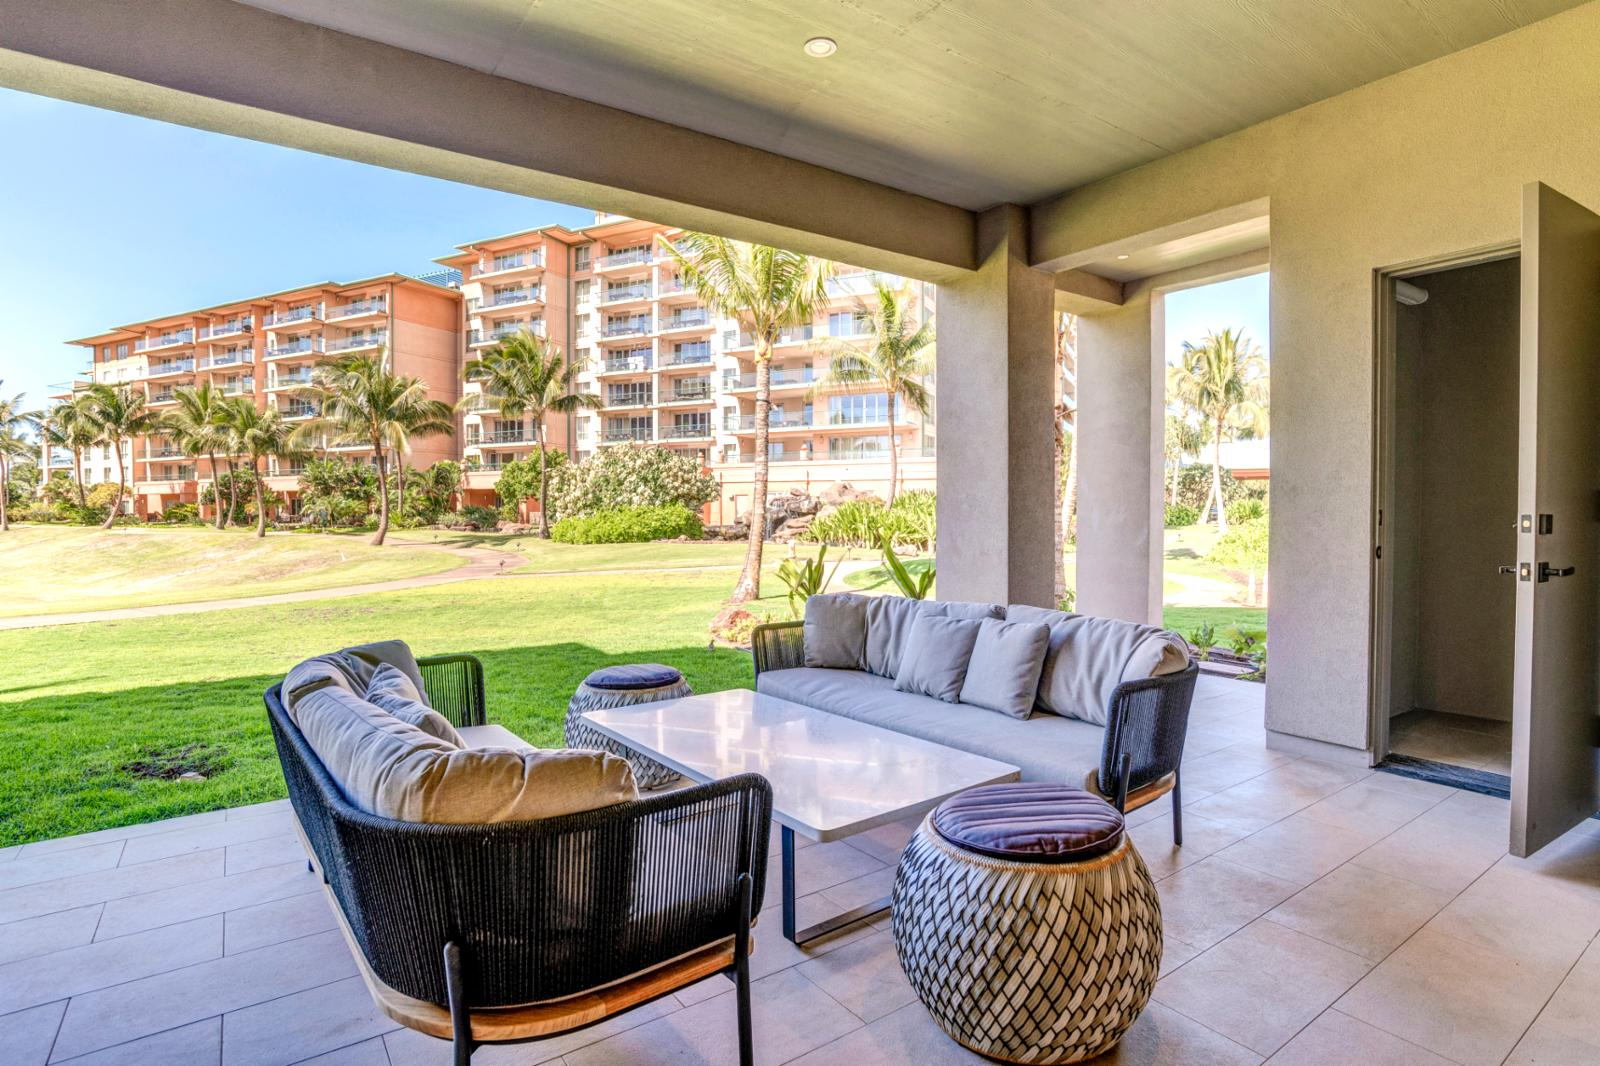 Enjoy cool ocean breezes on your private lanai!